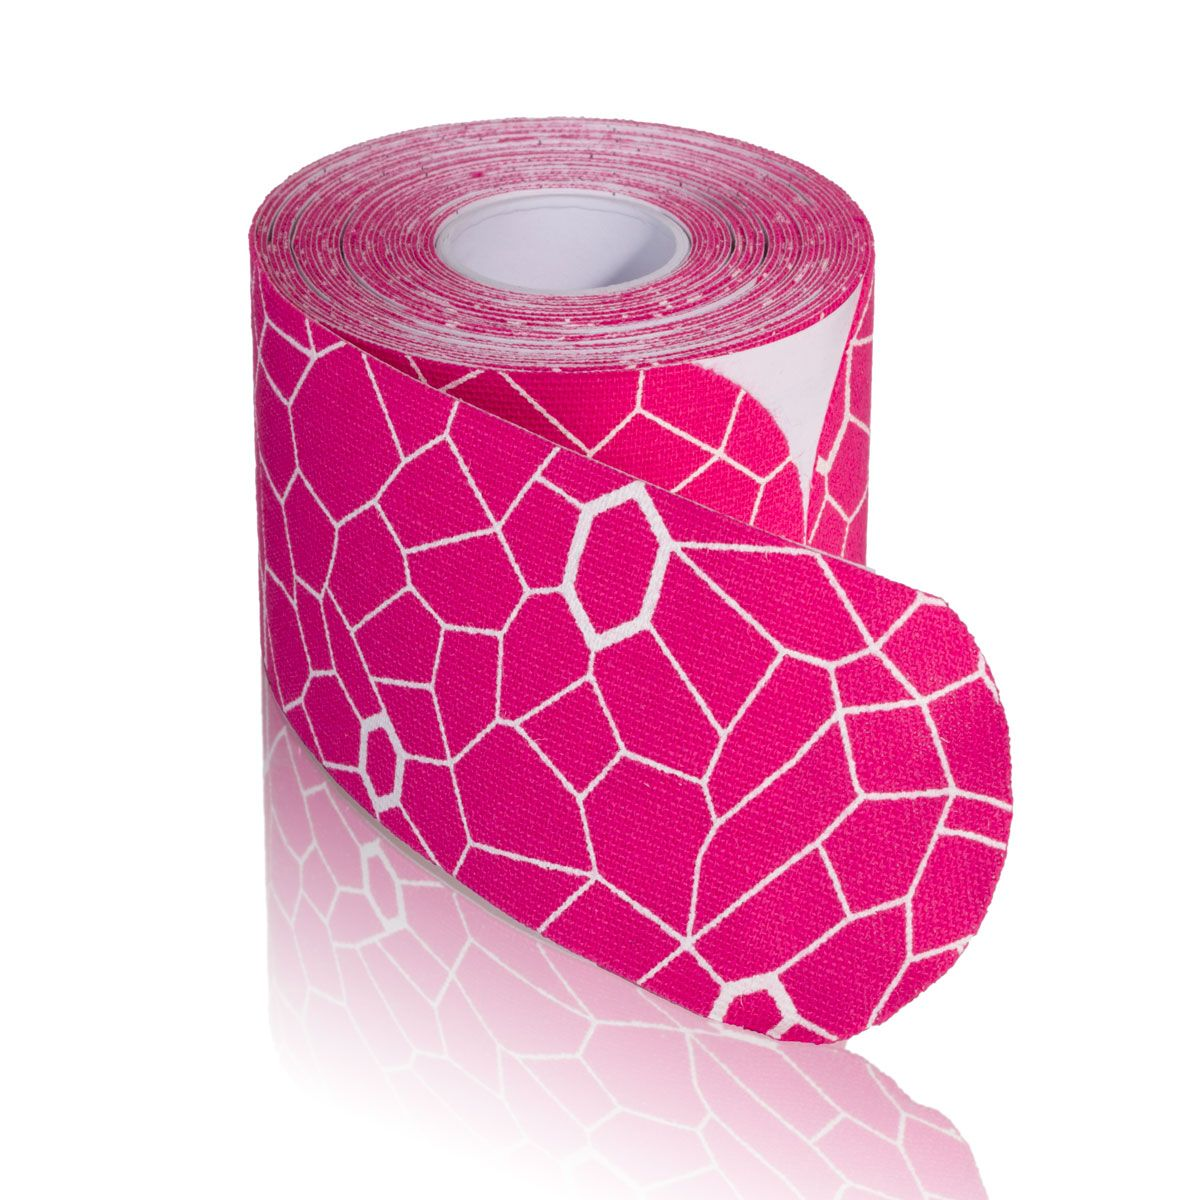 TheraBand Kinesiology Tape, 20 pack, 2 in x 10 in, Pink/White